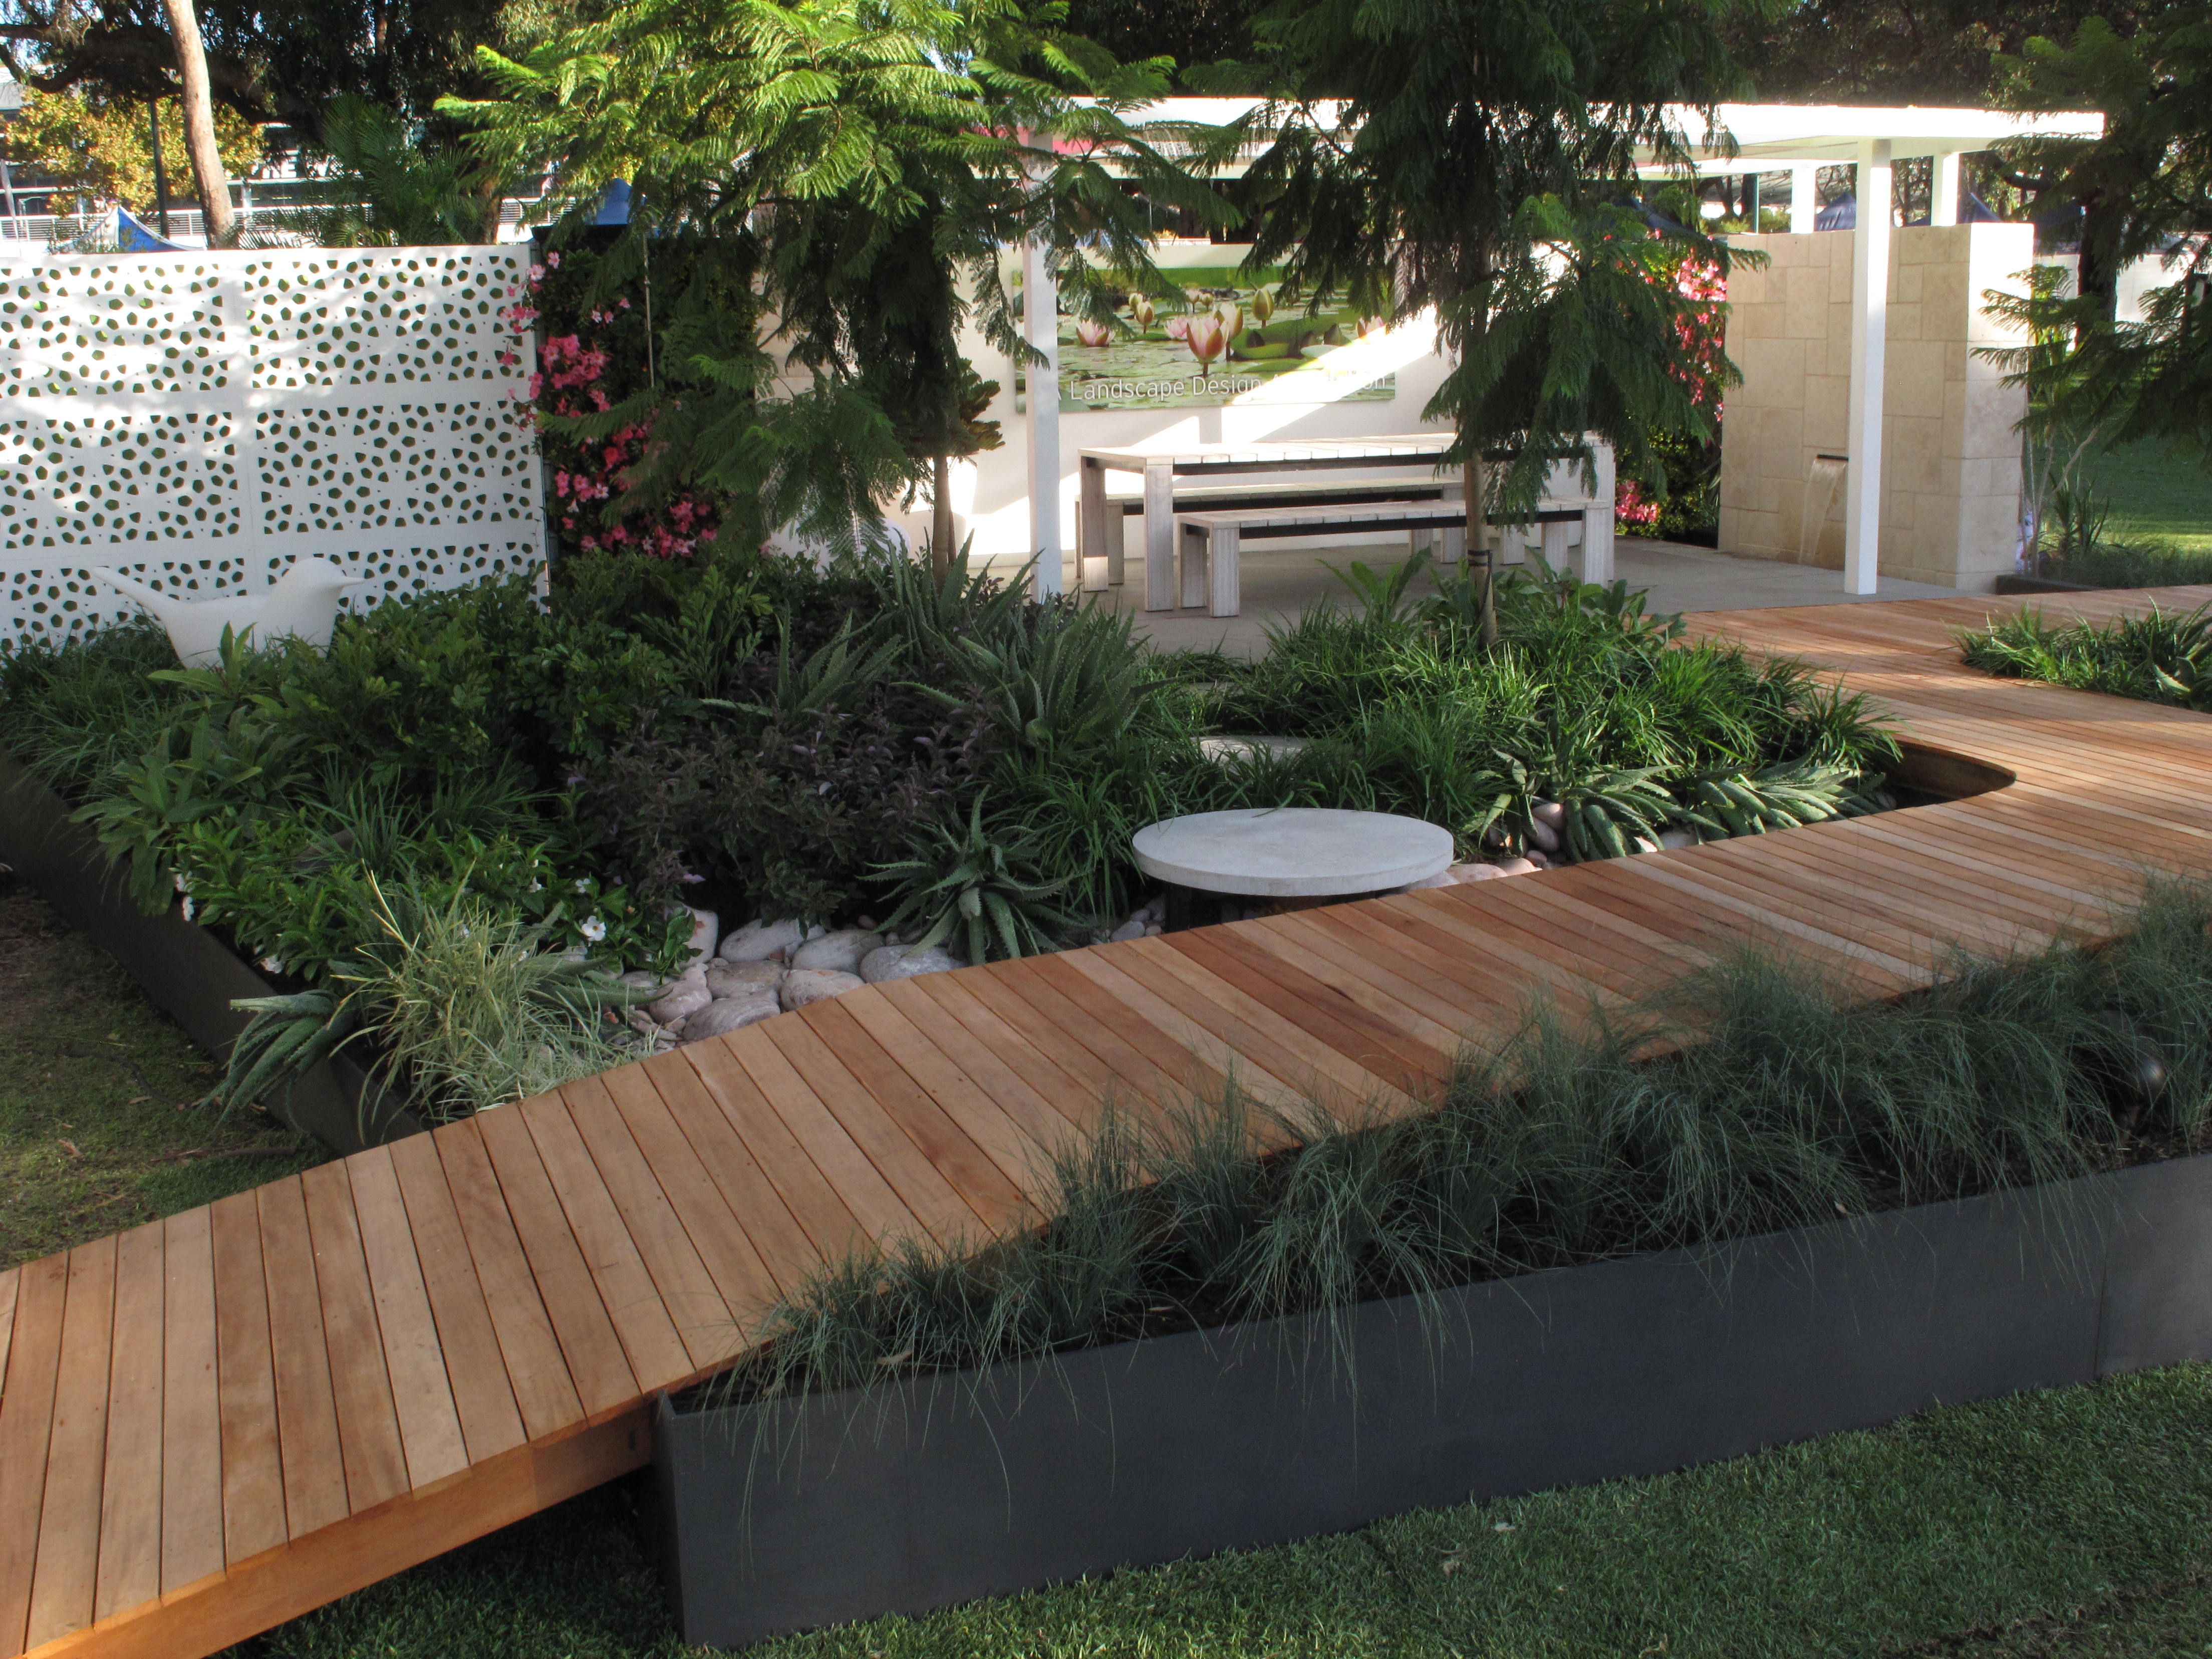 Easy visitor access with a ramped #deck through the garden ...